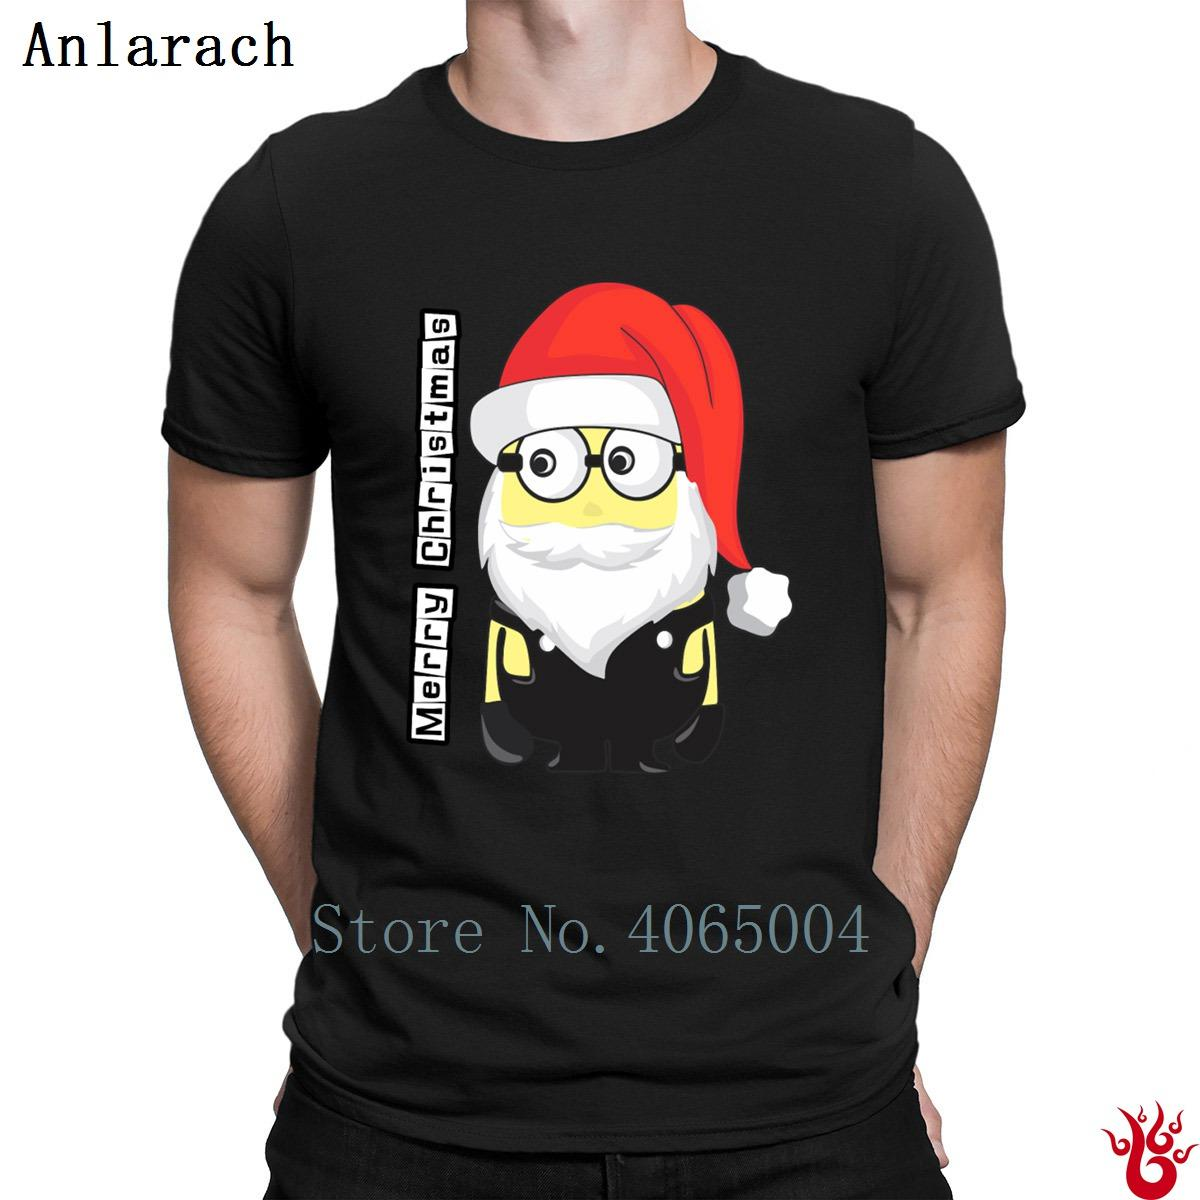 minion speciaal christmas tshirts cotton hiphop tops fit size s 3xl men t shirt spring unique designer breathable unique buy funny t shirts online tee - Minion Christmas Shirt